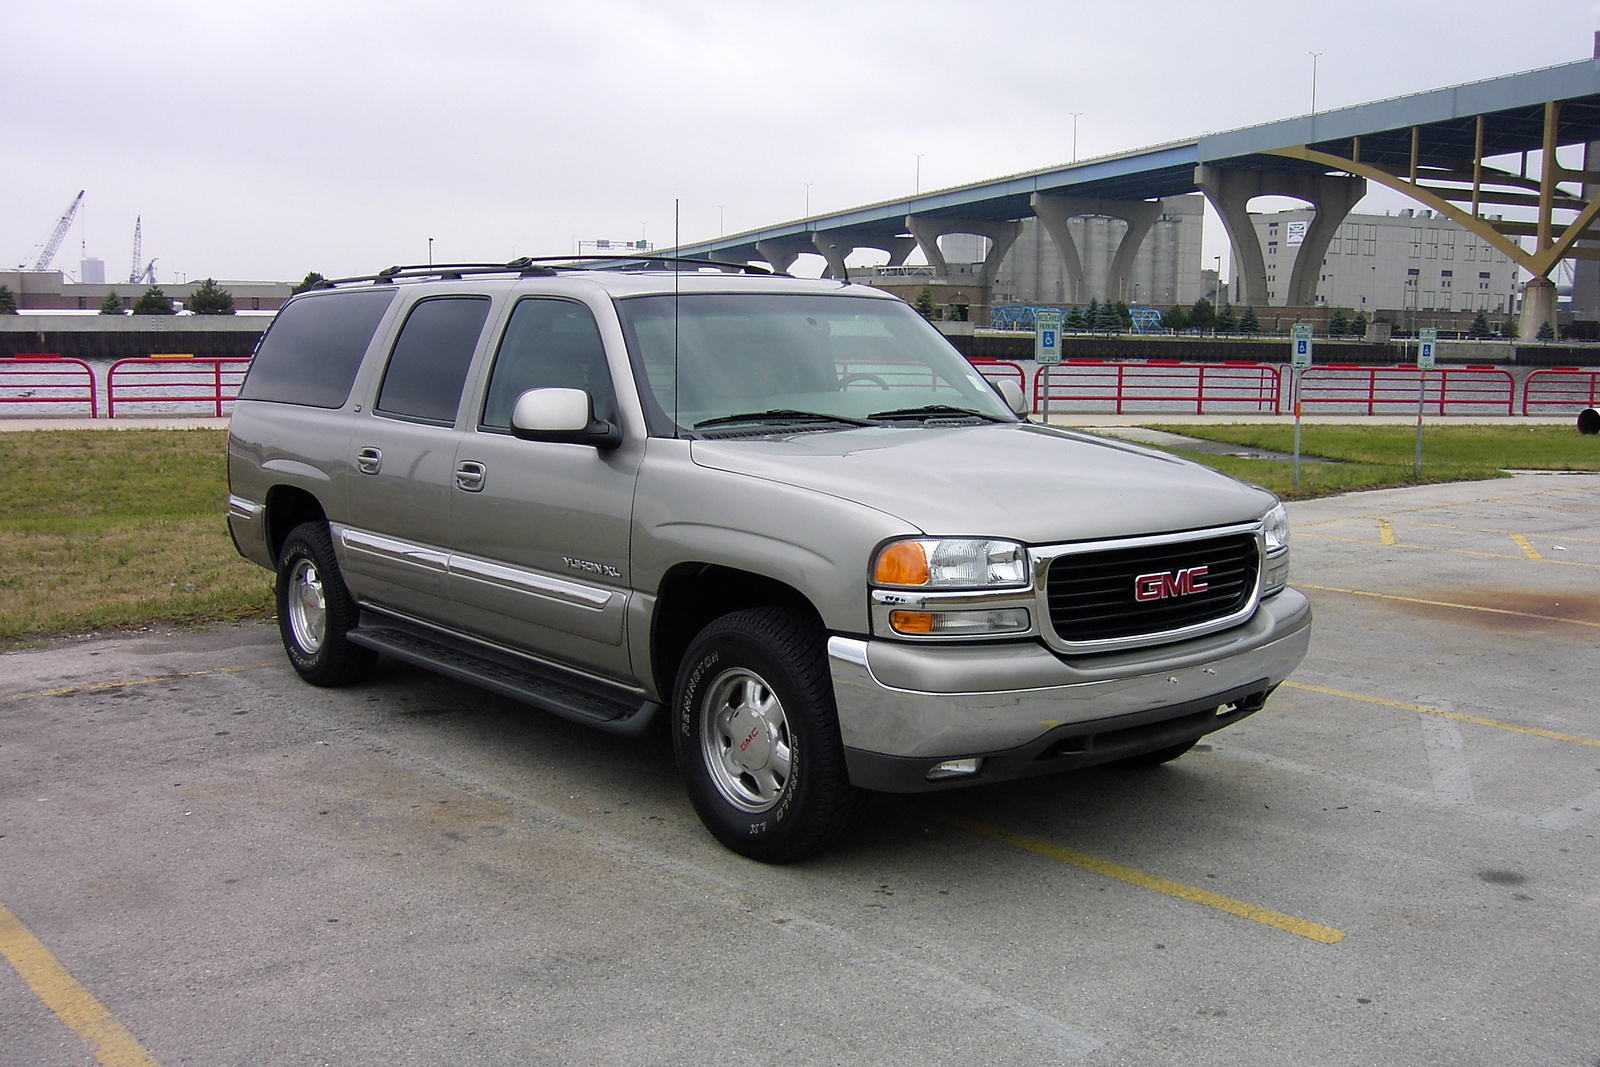 Picture of 2005 gmc yukon xl 1500 slt exterior gallery_worthy